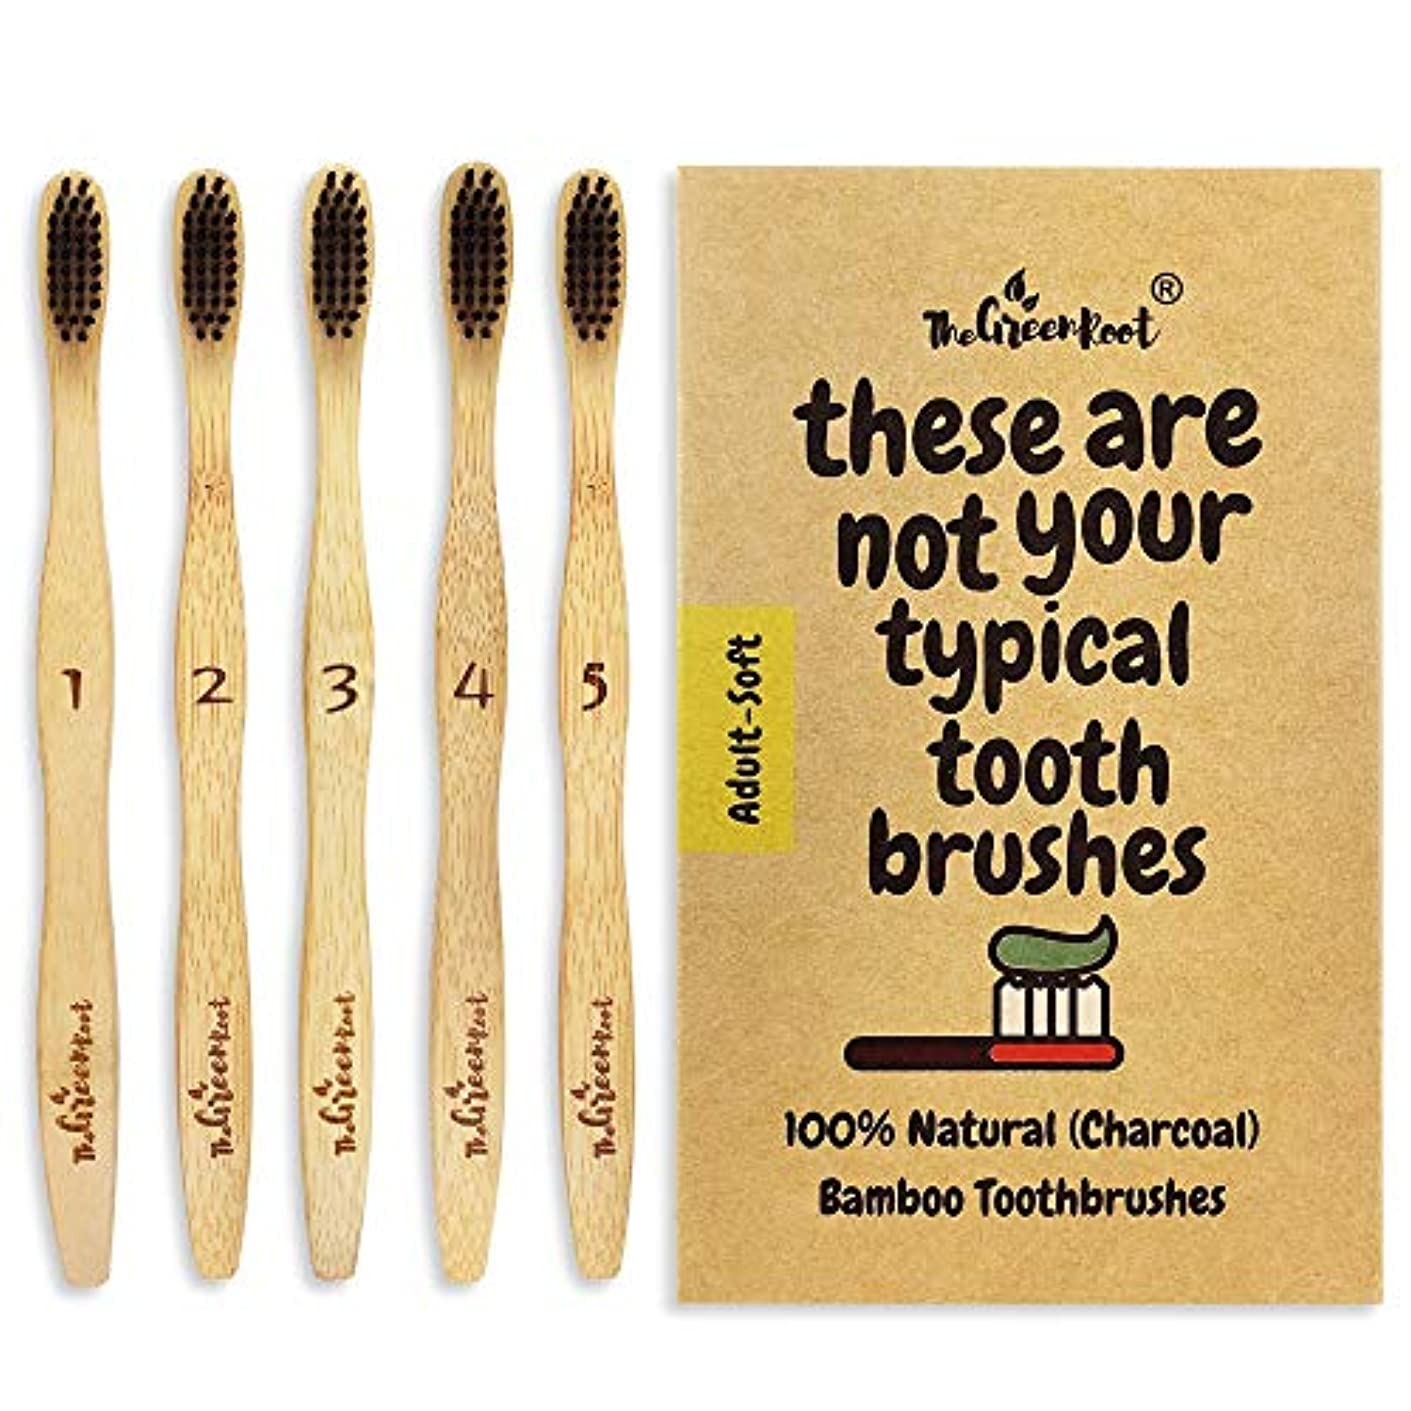 Natural Charcoal Bamboo Toothbrushes (Pack of 5) for Adults with Soft Bio-Based Nylon Bristles - Individually...